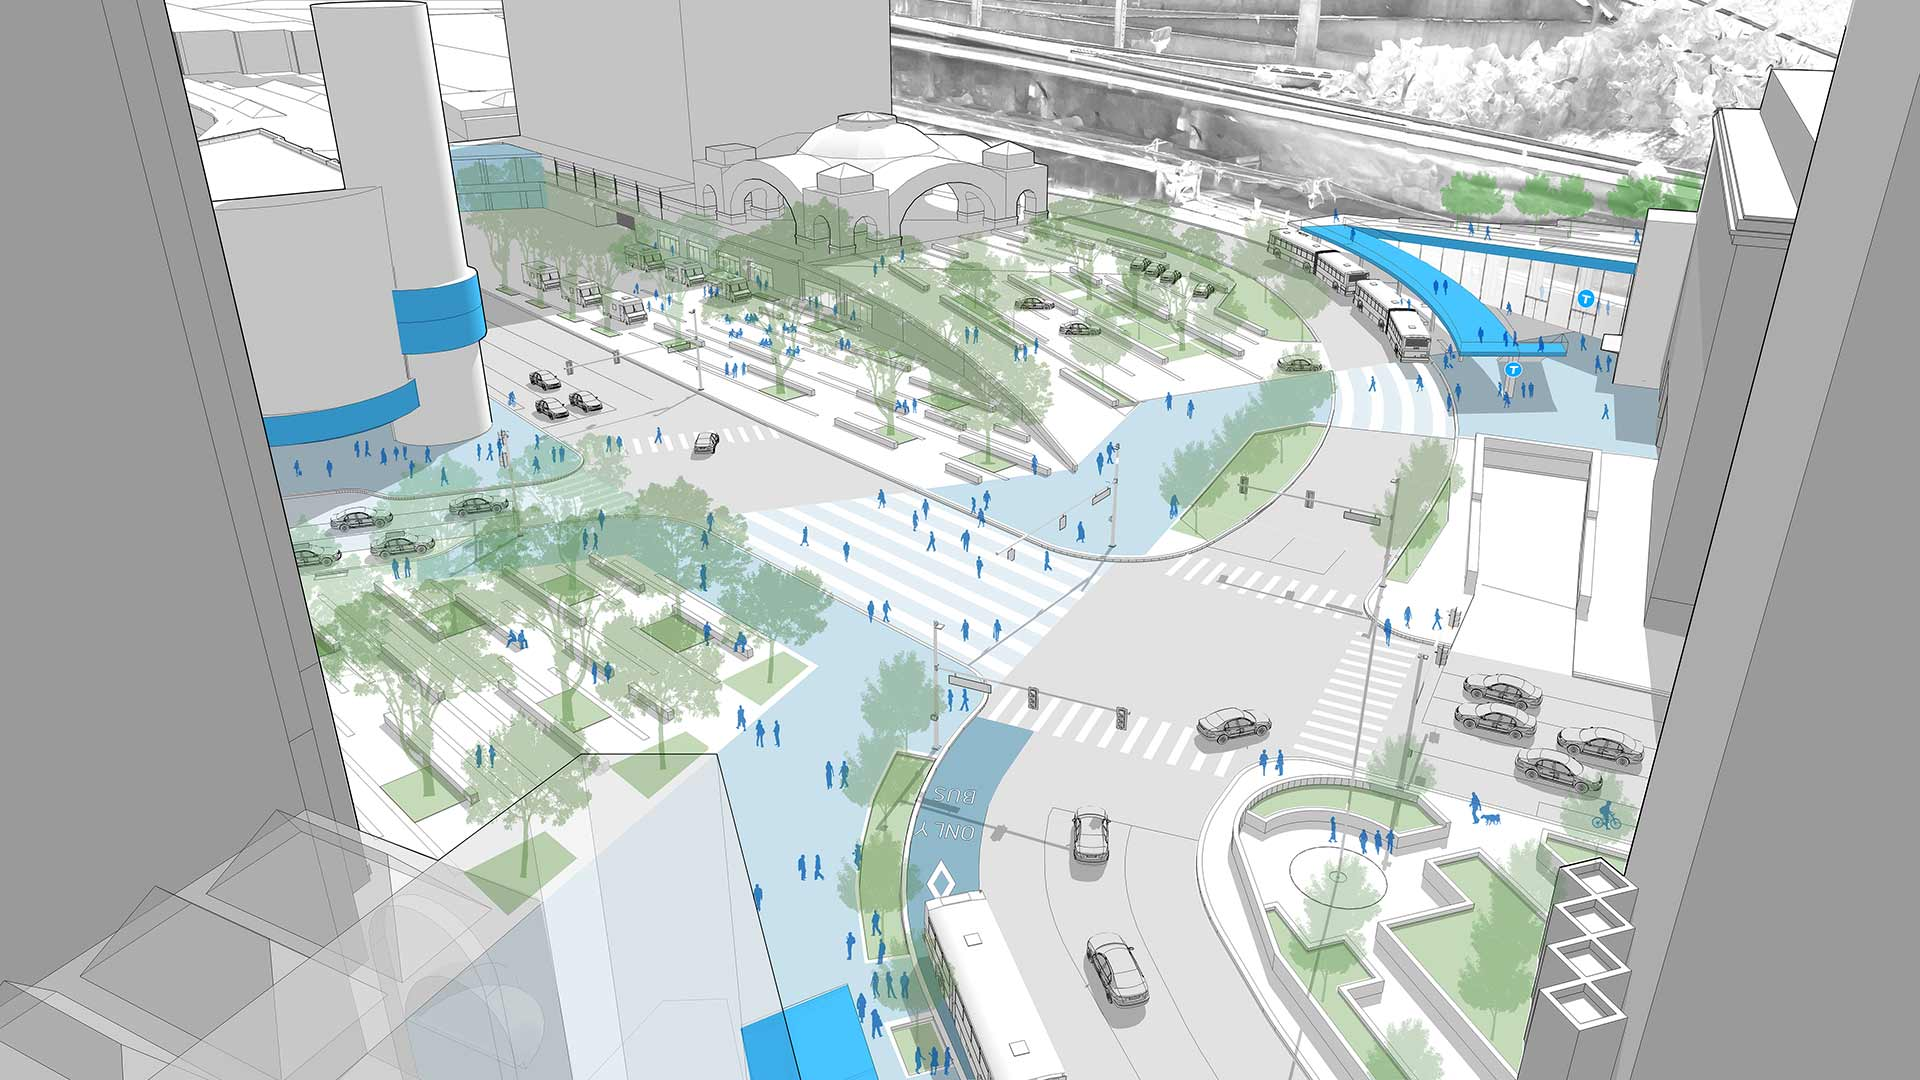 Part of PCRG's Better Busway Study in partnership with the Port Authority of Allegheny County, the plan developed by evolveEA seeks to activate a key anchor to Pittsburgh's Golden Triangle.